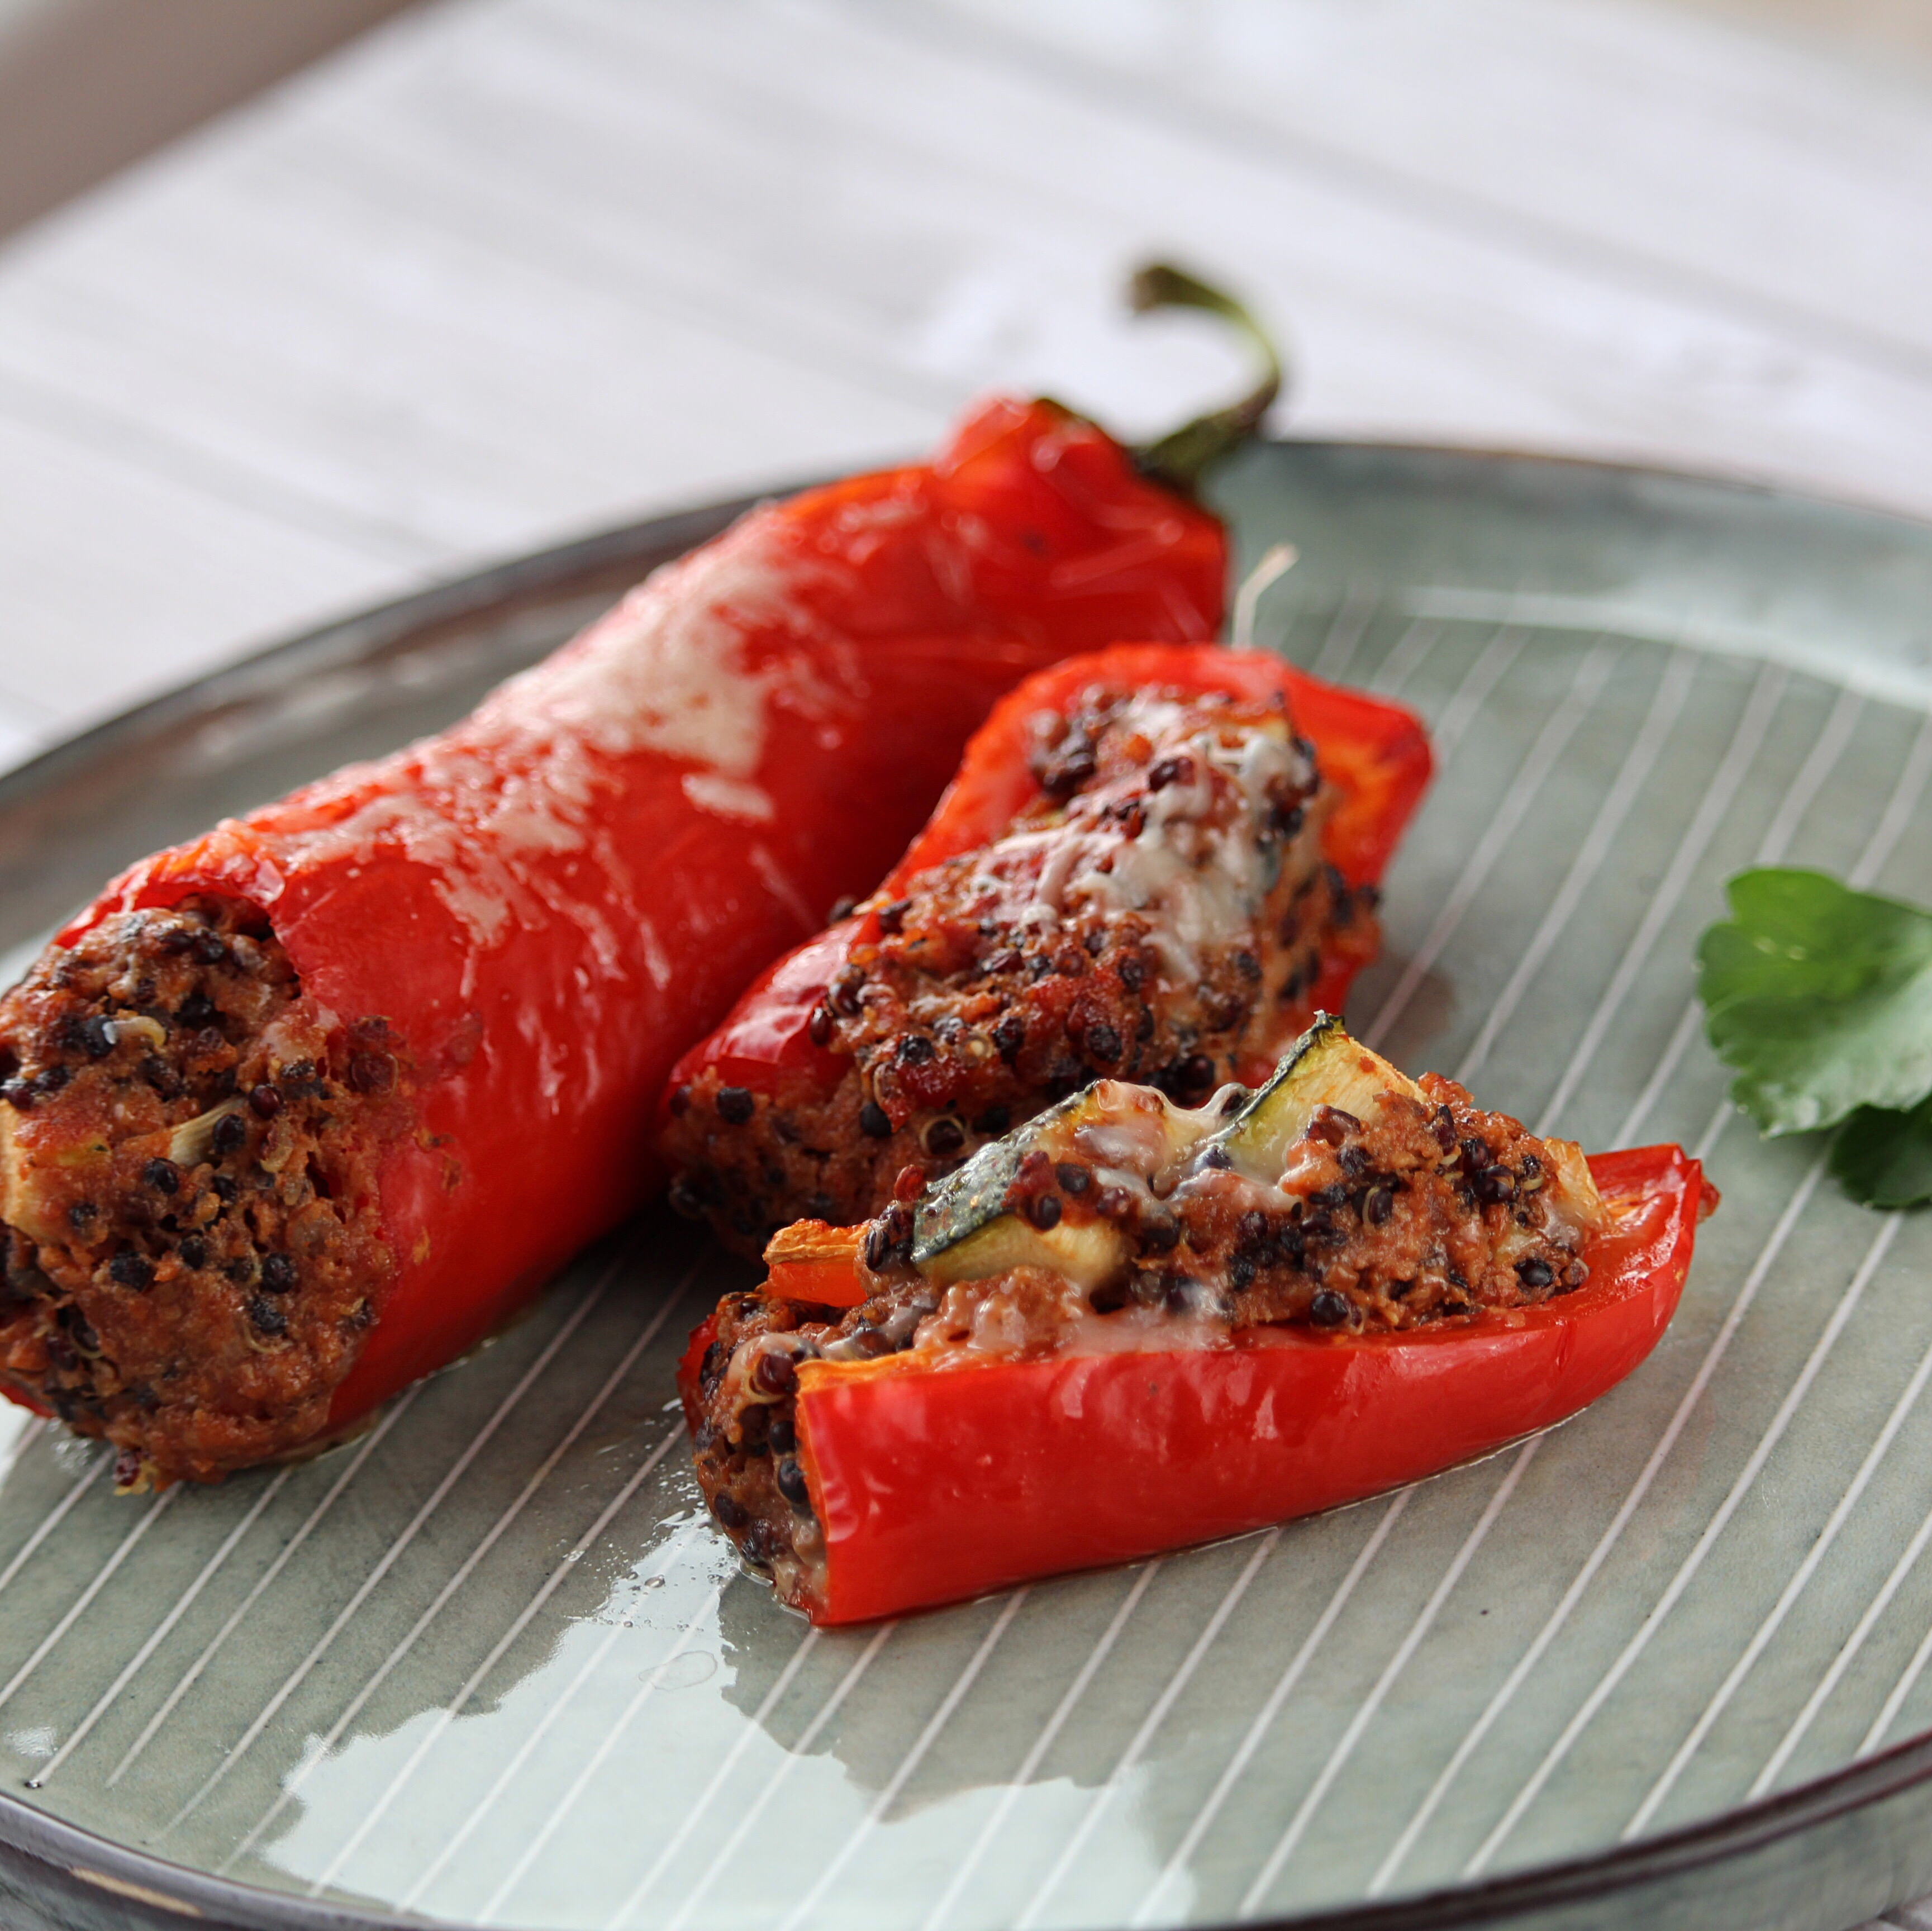 Stuffed Red Peppers with Quinoa, Mushrooms, and Turkey